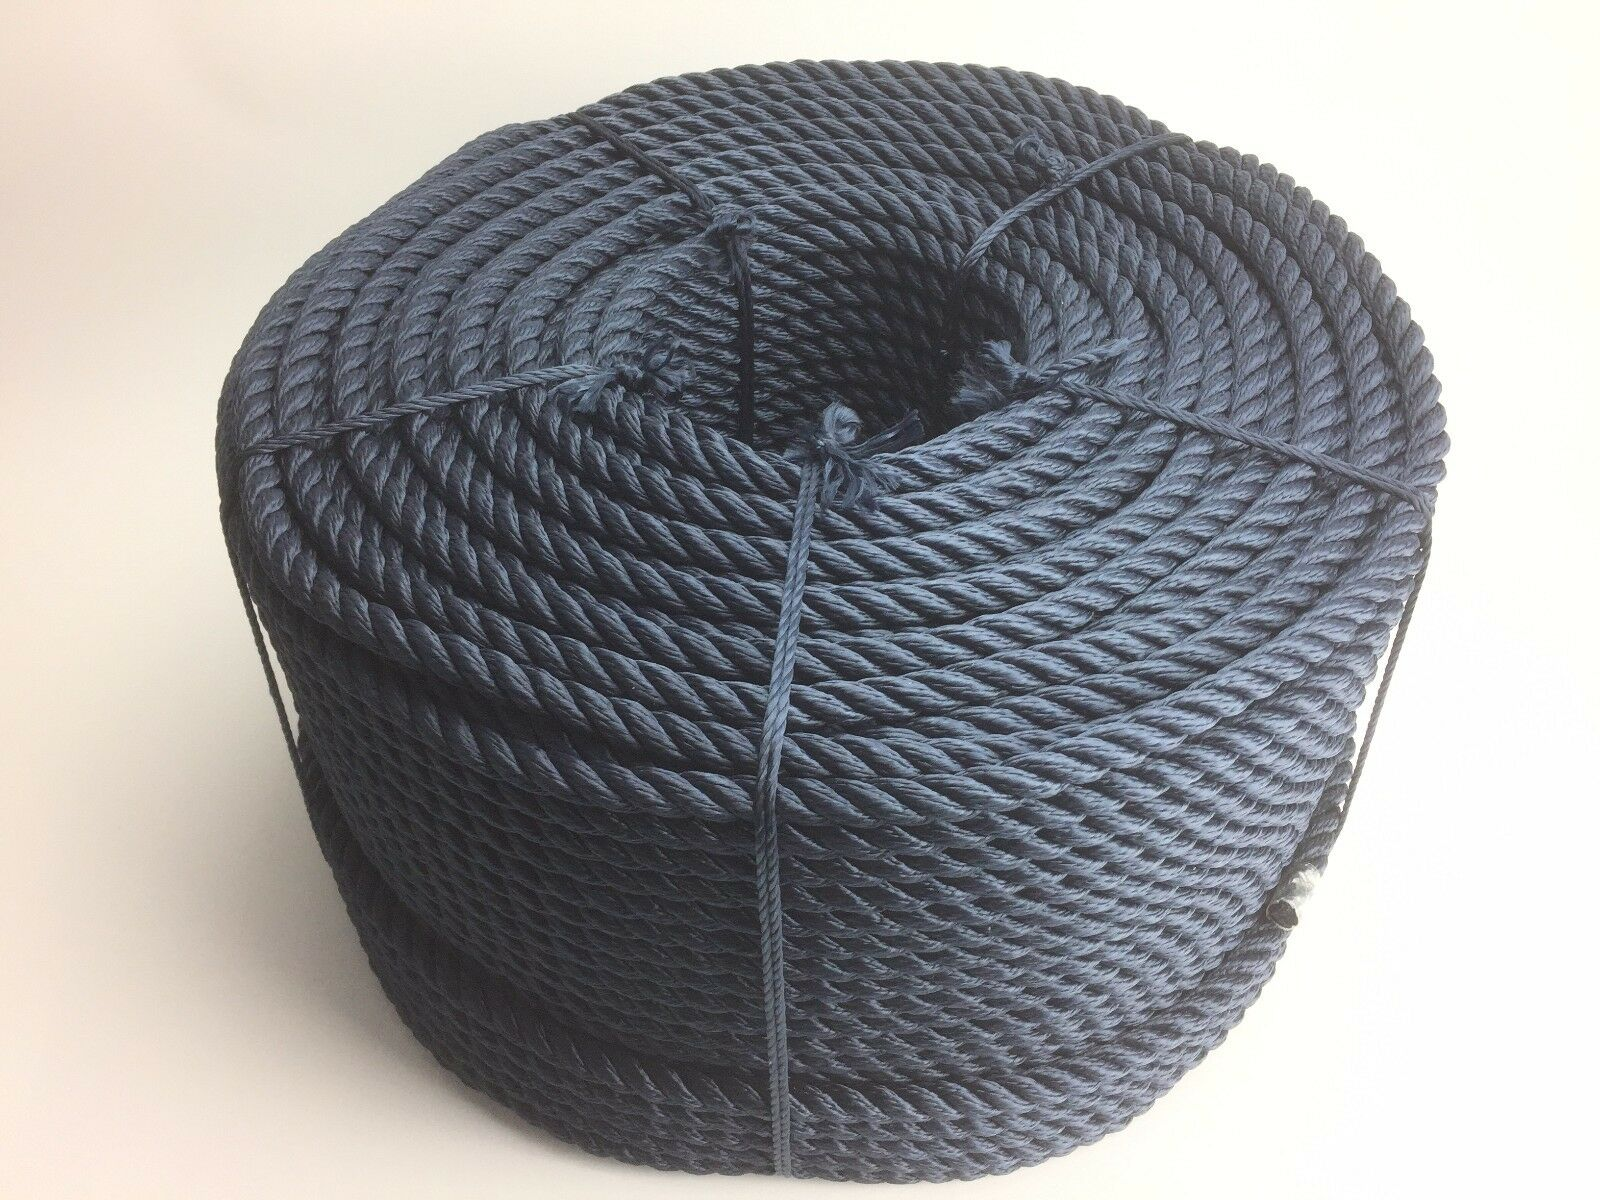 14mm Softline Rope x 220 Metre Coil, Navy bluee, Yacht, Sailing, Boats, Marine